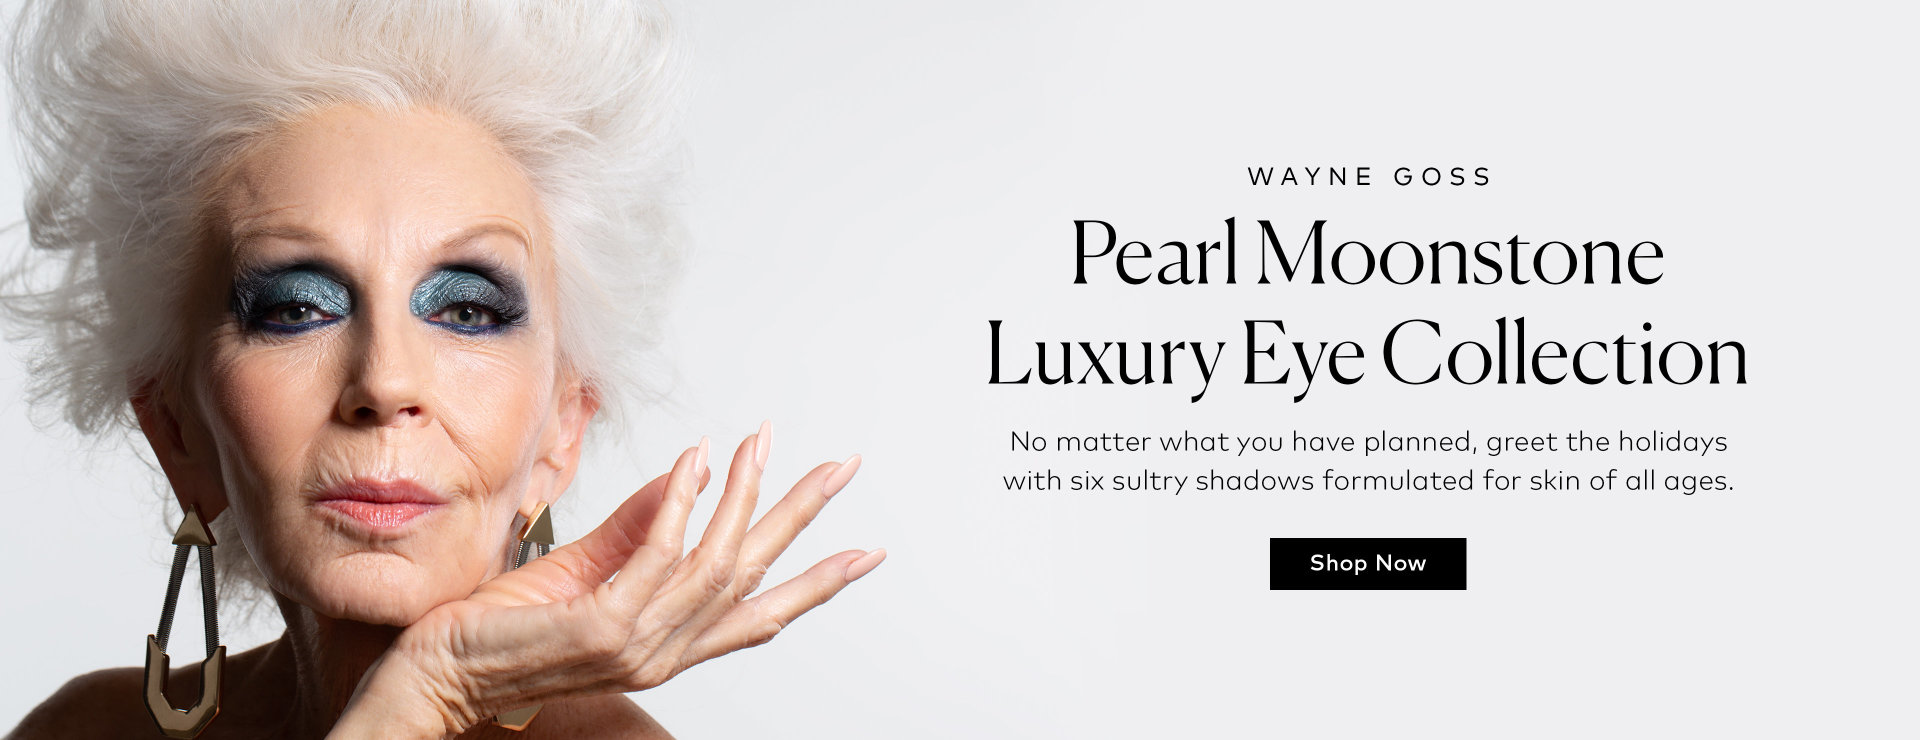 Shop Wayne Goss Pearl Moonstone Luxury Eye Collection now on Beautylish.com